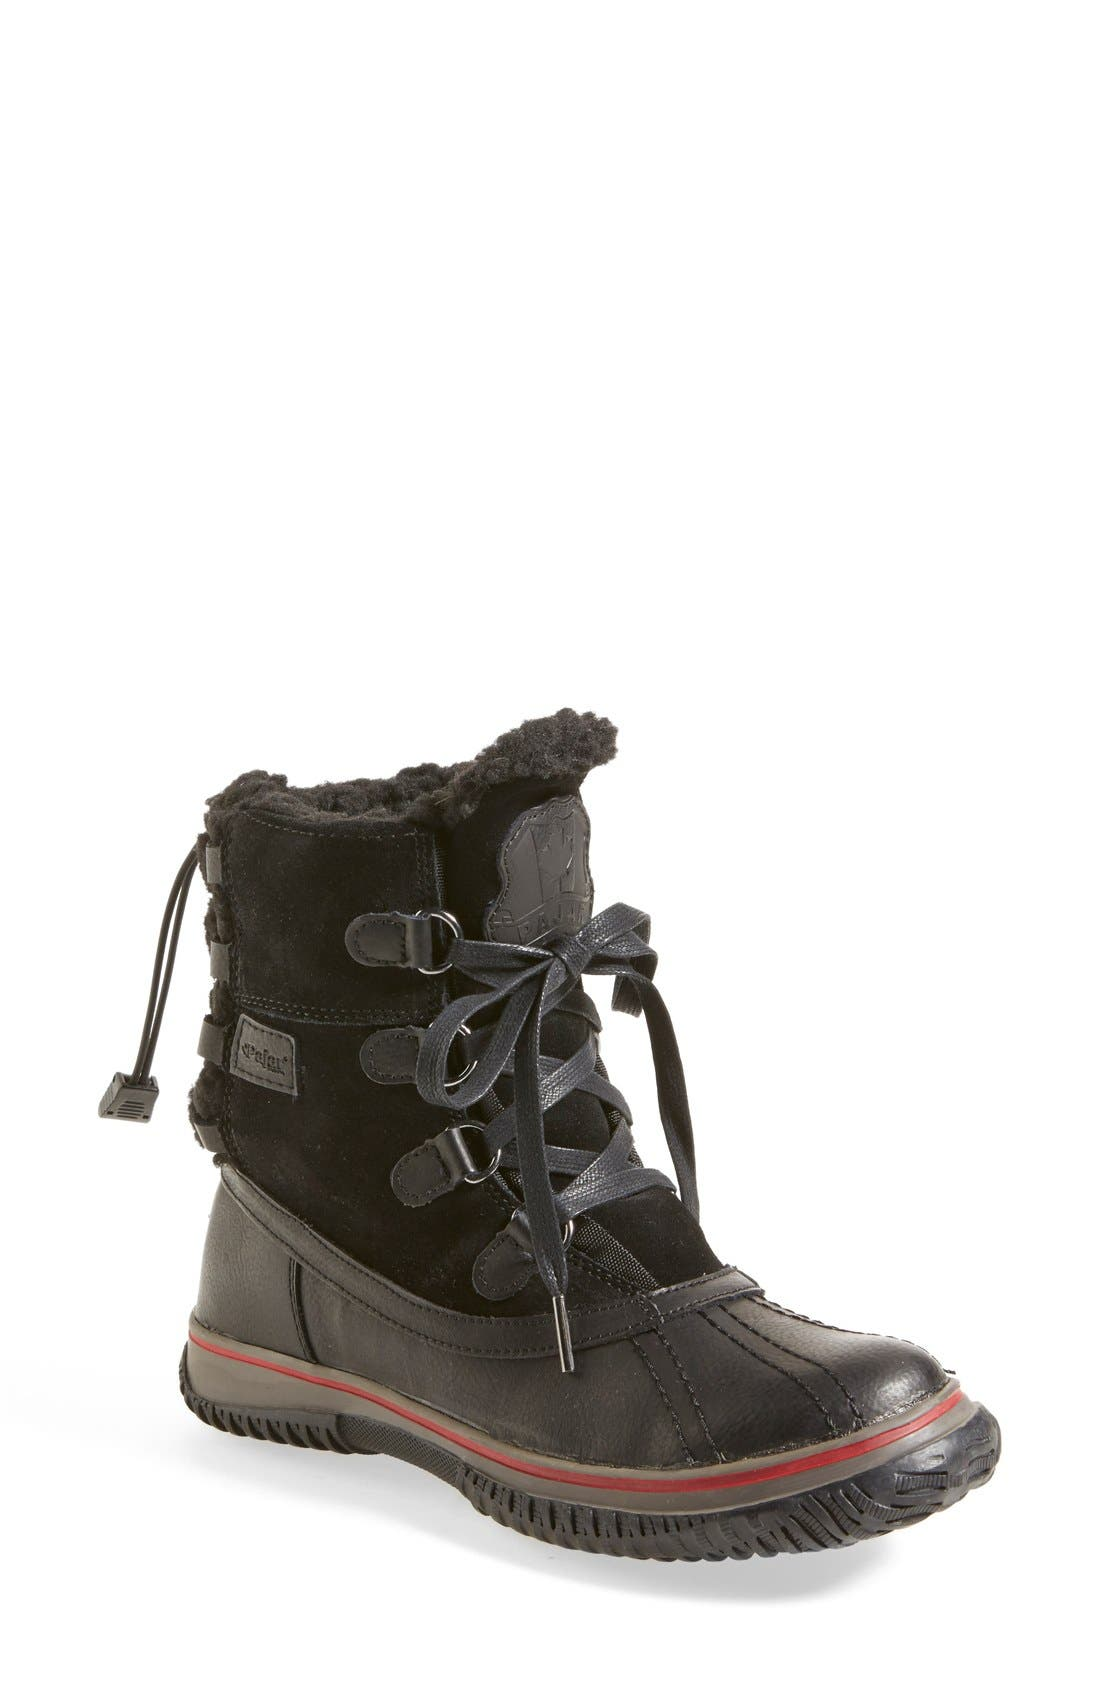 'Iceland' Winter Boot,                             Main thumbnail 1, color,                             001